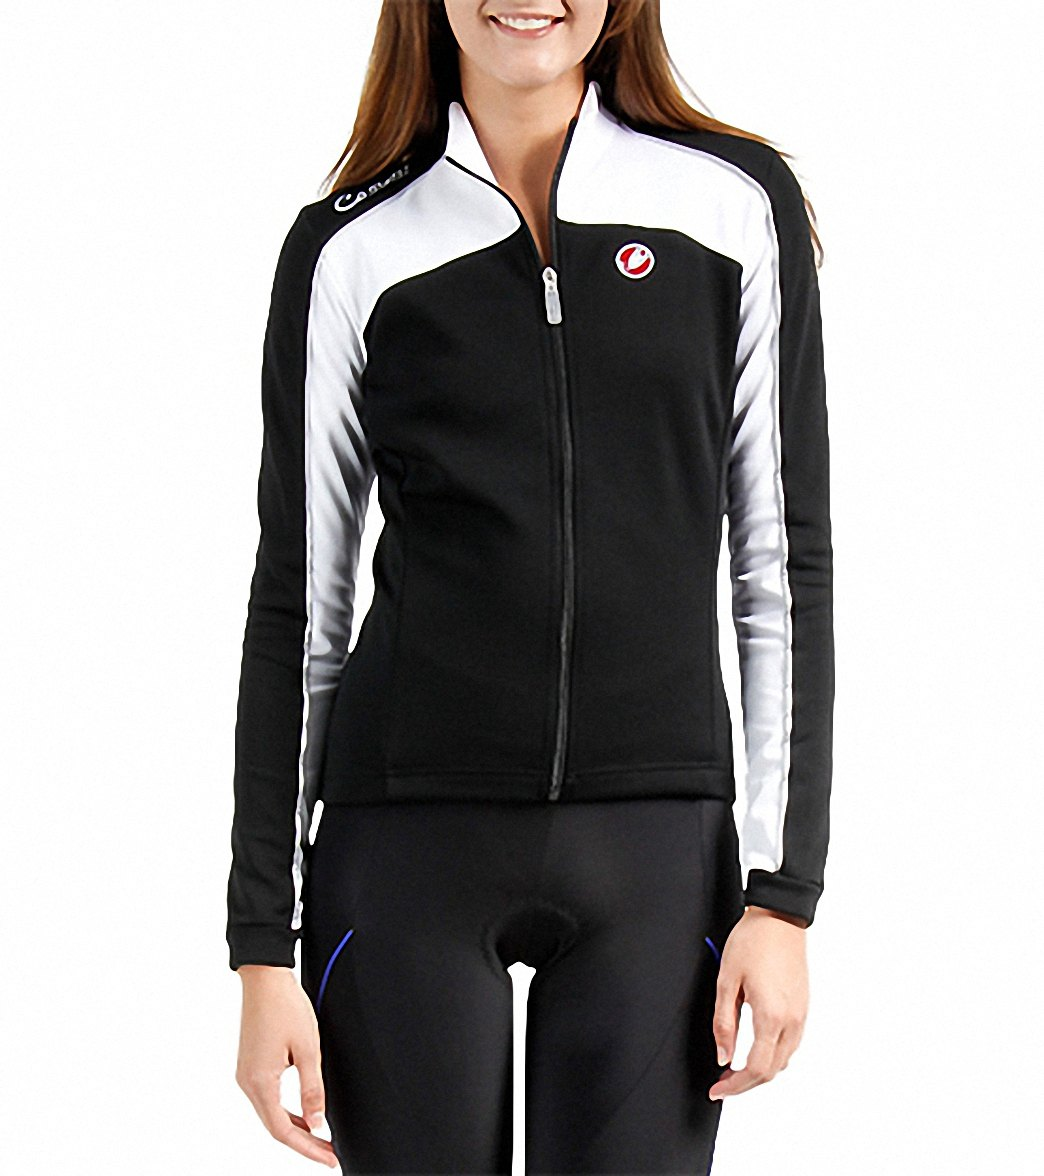 Castelli Women s Viziata Full Zip LS Cycling Jersey at SwimOutlet.com -  Free Shipping 9238b6454